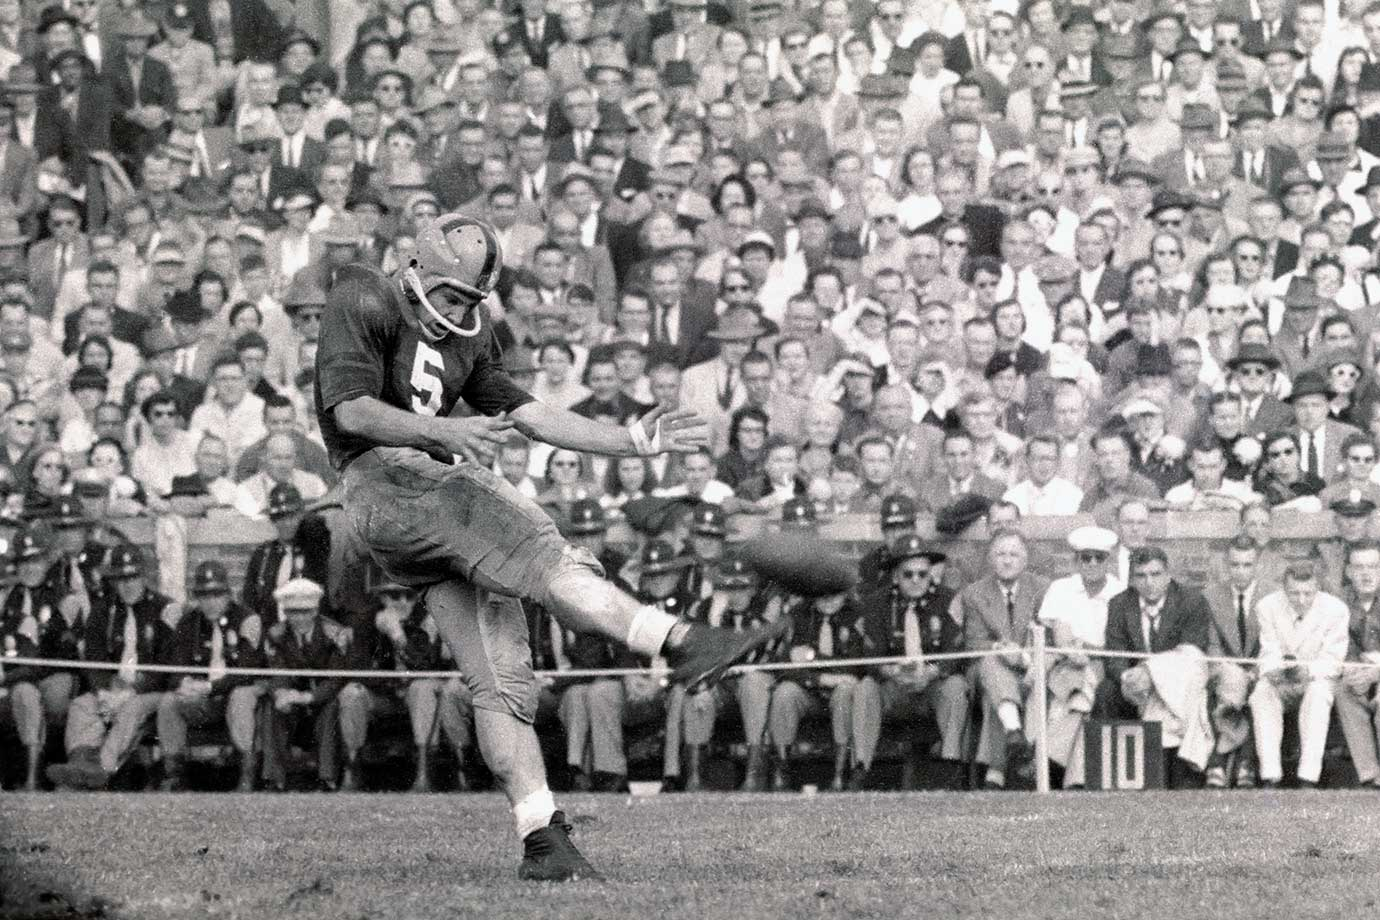 Oct. 20, 1956 — Notre Dame vs. Michigan State